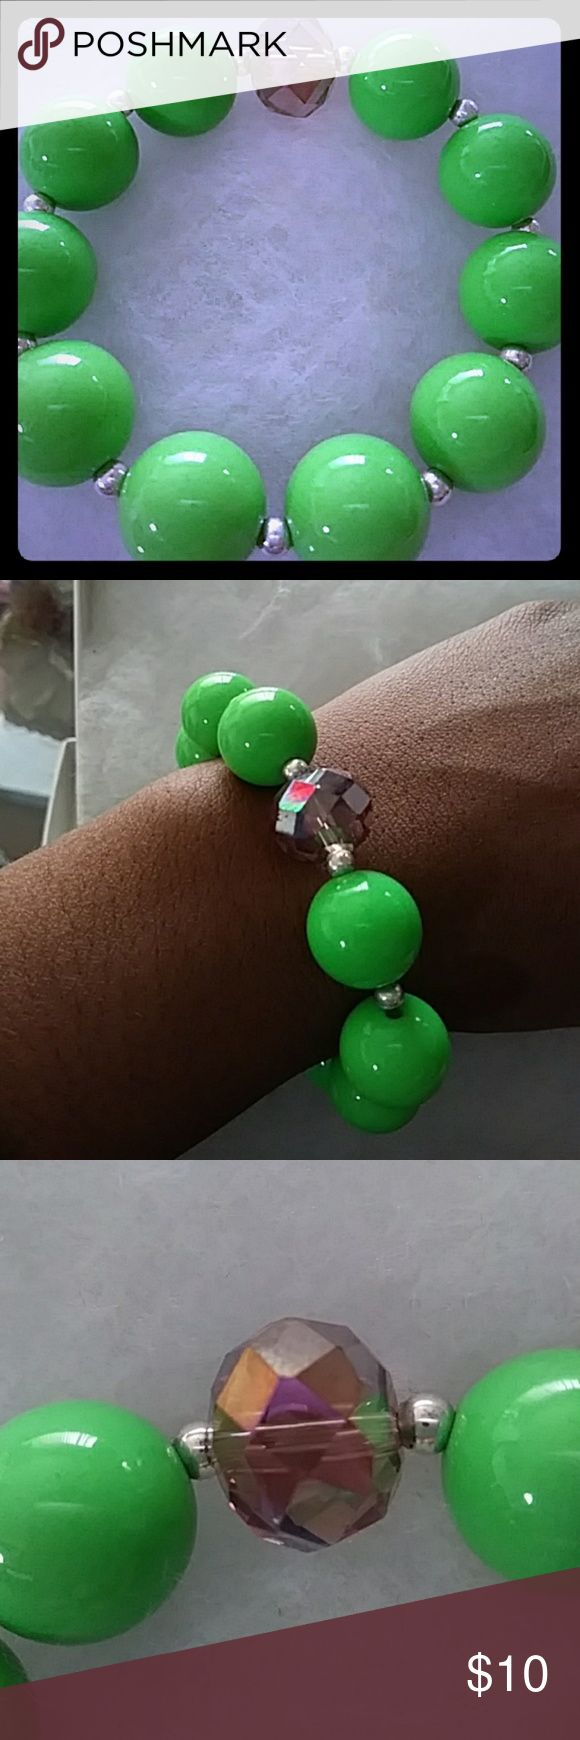 Arm candy Bracelet Apple green beads with silver spacers with a beautiful iridescent crystal stone. Stretchy bracelet, this  is such a fun bracelet Jewelry Bracelets